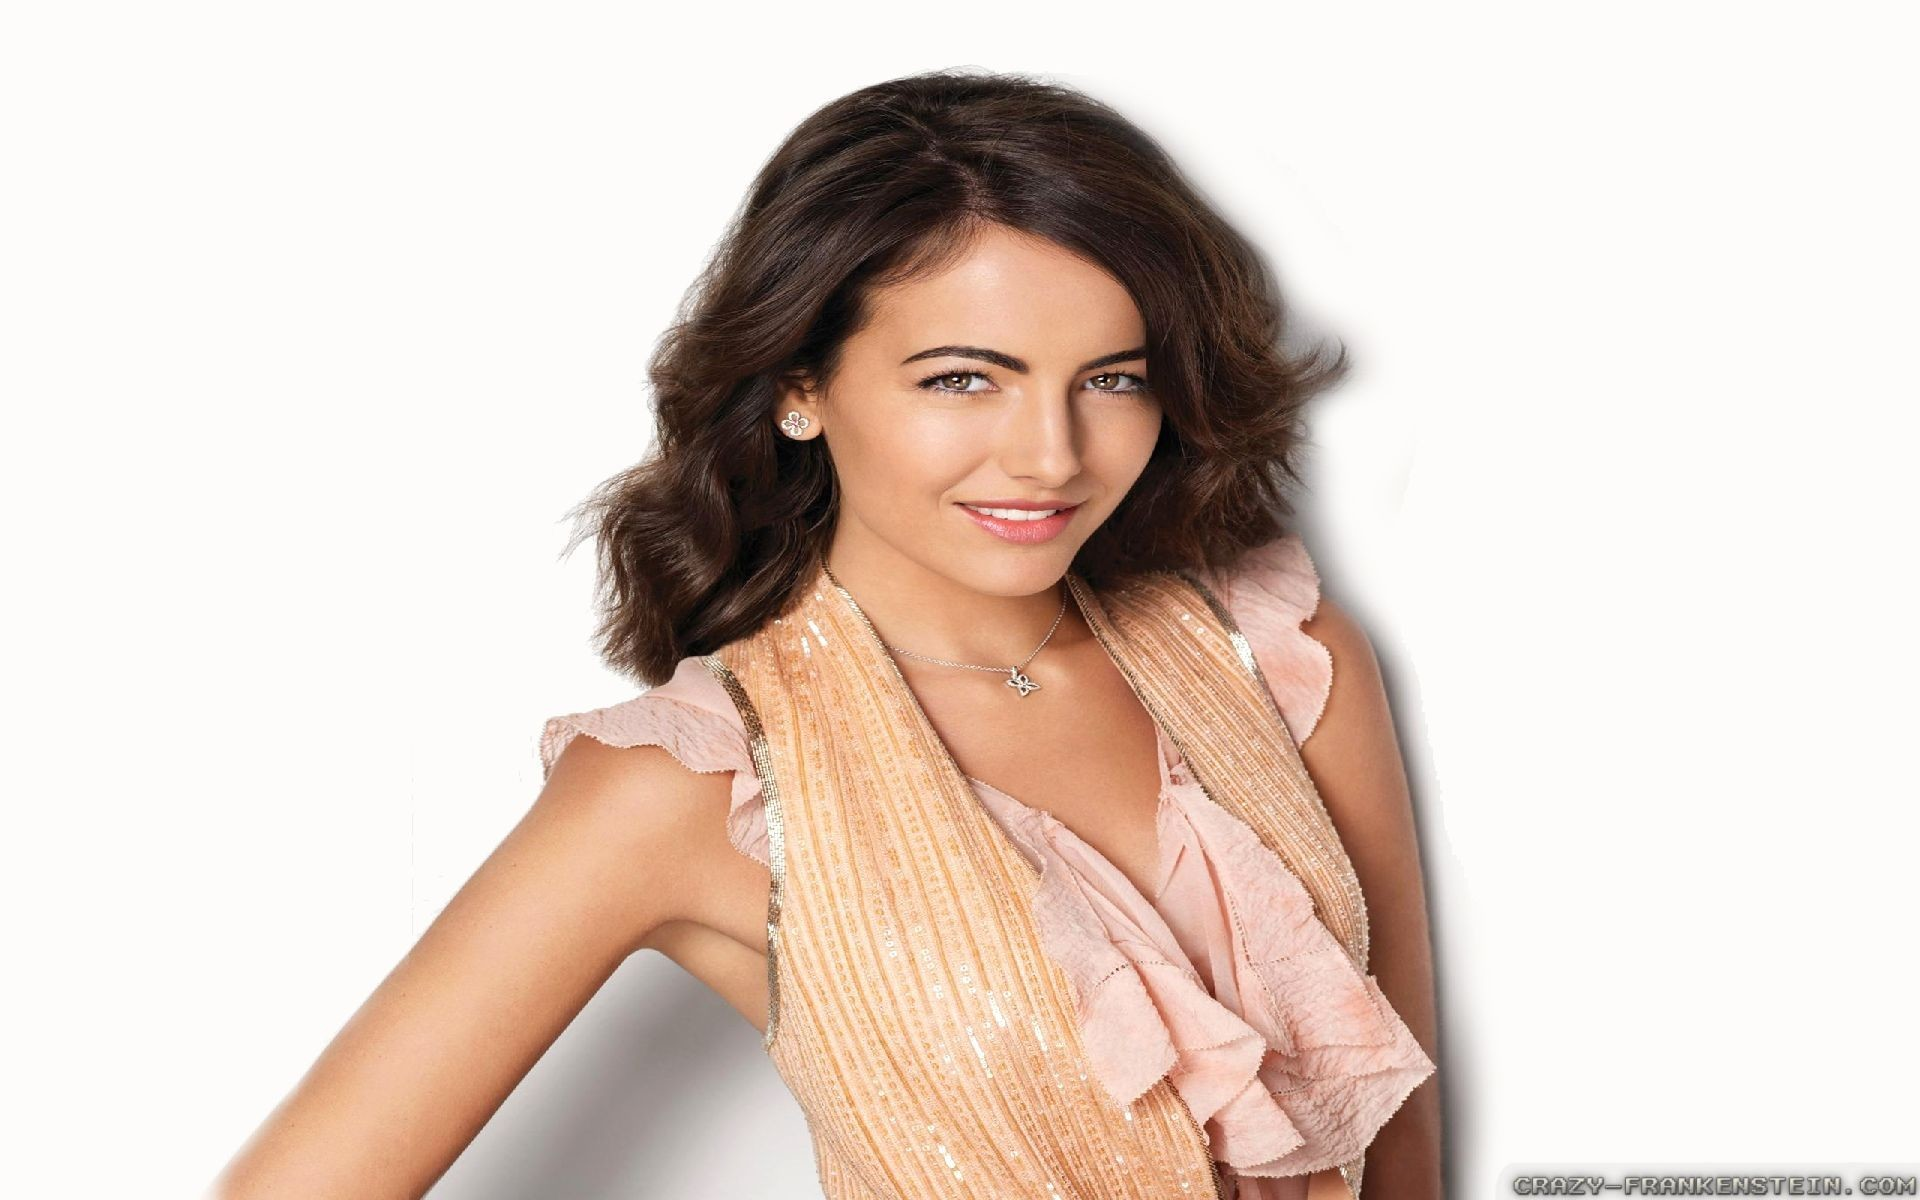 Res: 1920x1200, Wallpaper: Lovely Camilla Belle wallpapers. Resolution: 1024x768    1280x1024   1600x1200. Widescreen Res: 1440x900   1680x1050  